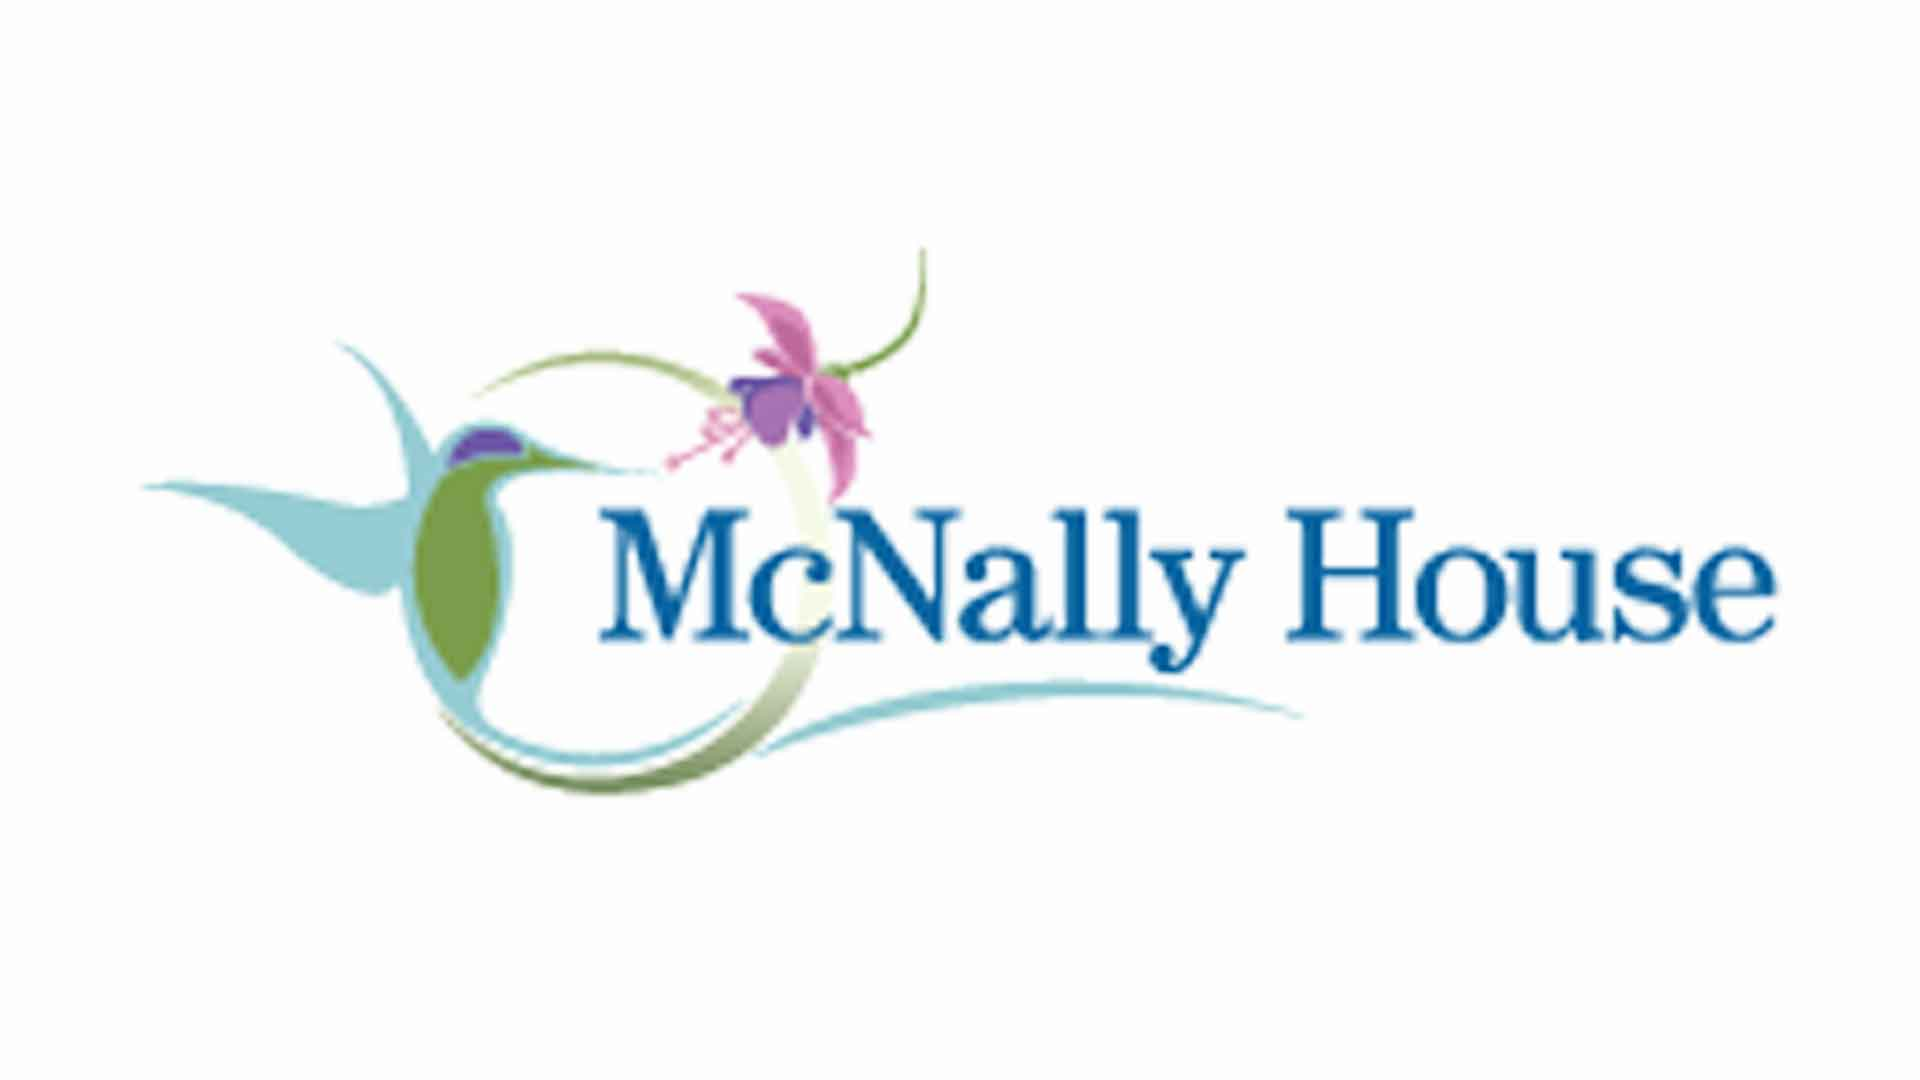 McNally House - Since 2008, McNally House Hospice is a residential setting that provides 24 hour specialized palliative care, free of charge, to people living with a terminal illness, as well as those in their life circle.Serving the Niagara West communities of Grimsby, Lincoln and West Lincoln, McNally House has an approach to palliative care that reflects the hospice philosophy, through our comprehensive and compassionate programs for residents and their families. Such care seeks to maximize the individual's quality of life; the emphasis is on living rather than dying.